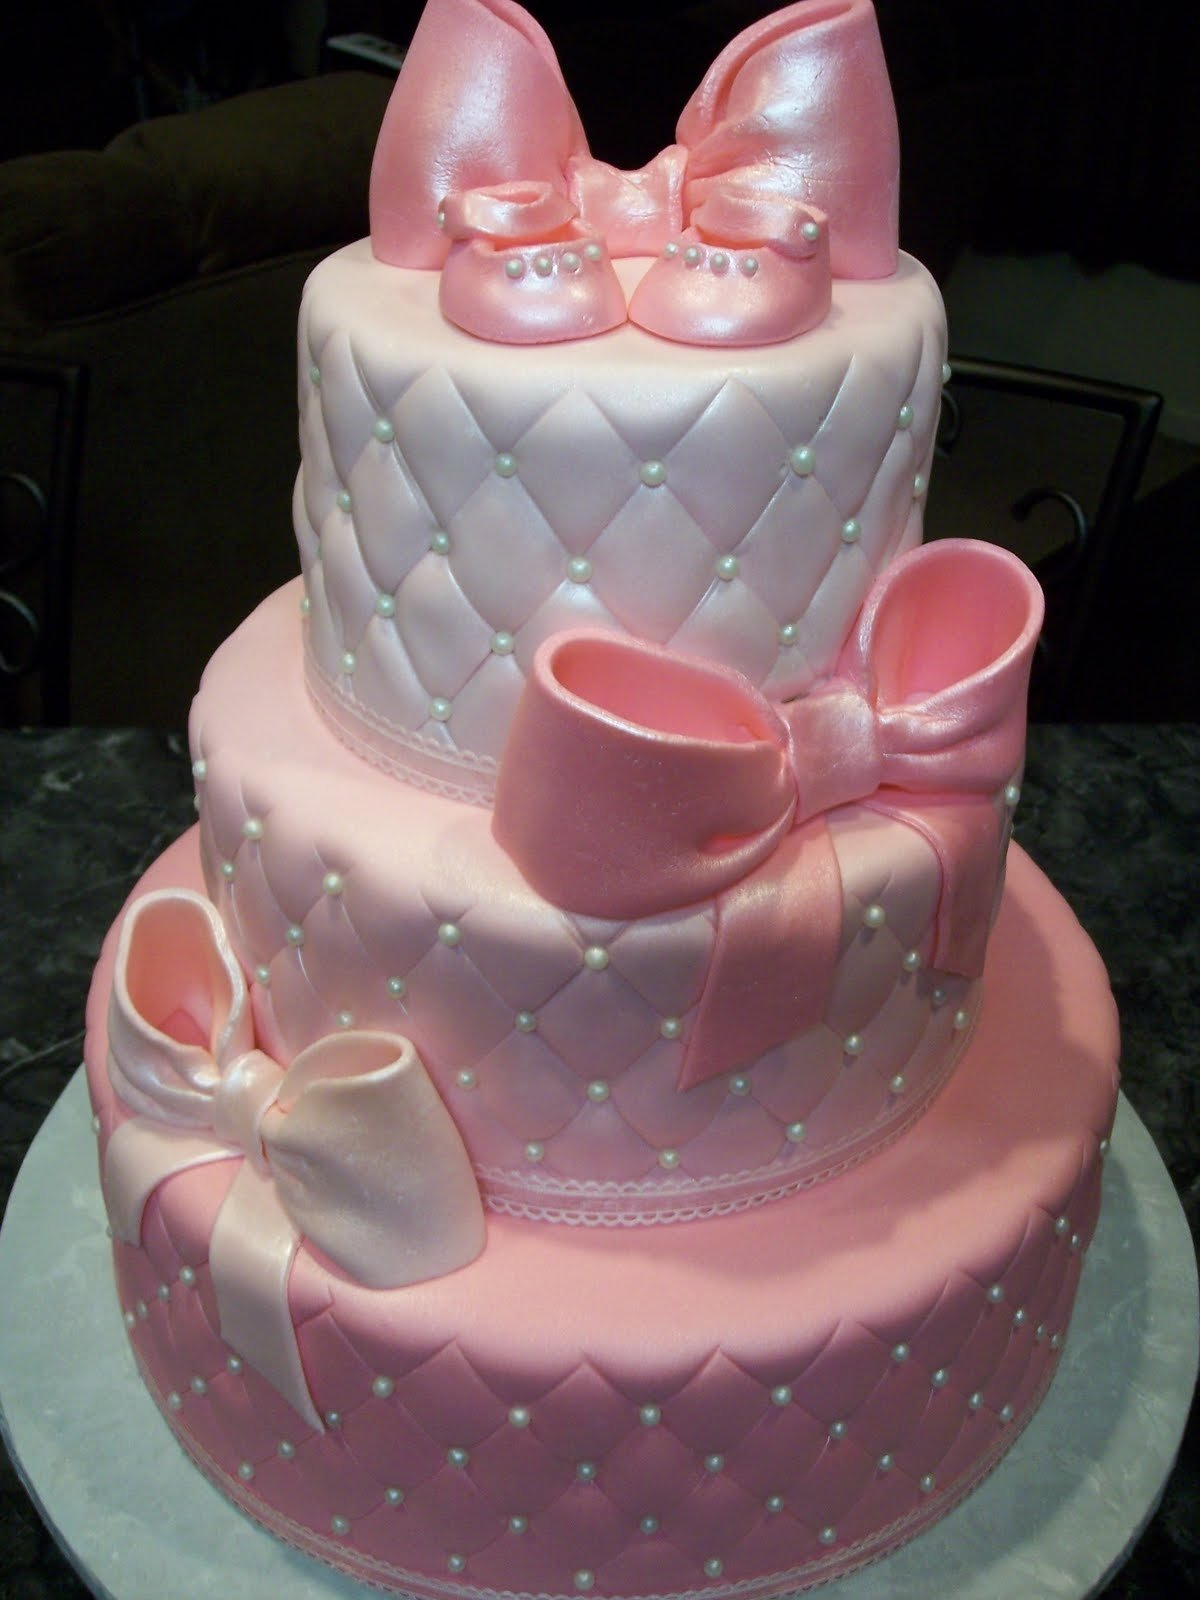 10 Stunning Baby Shower Cake Ideas For A Girl girl baby shower cakes and cupcakes ideas baby cake imagesbaby 7 2021